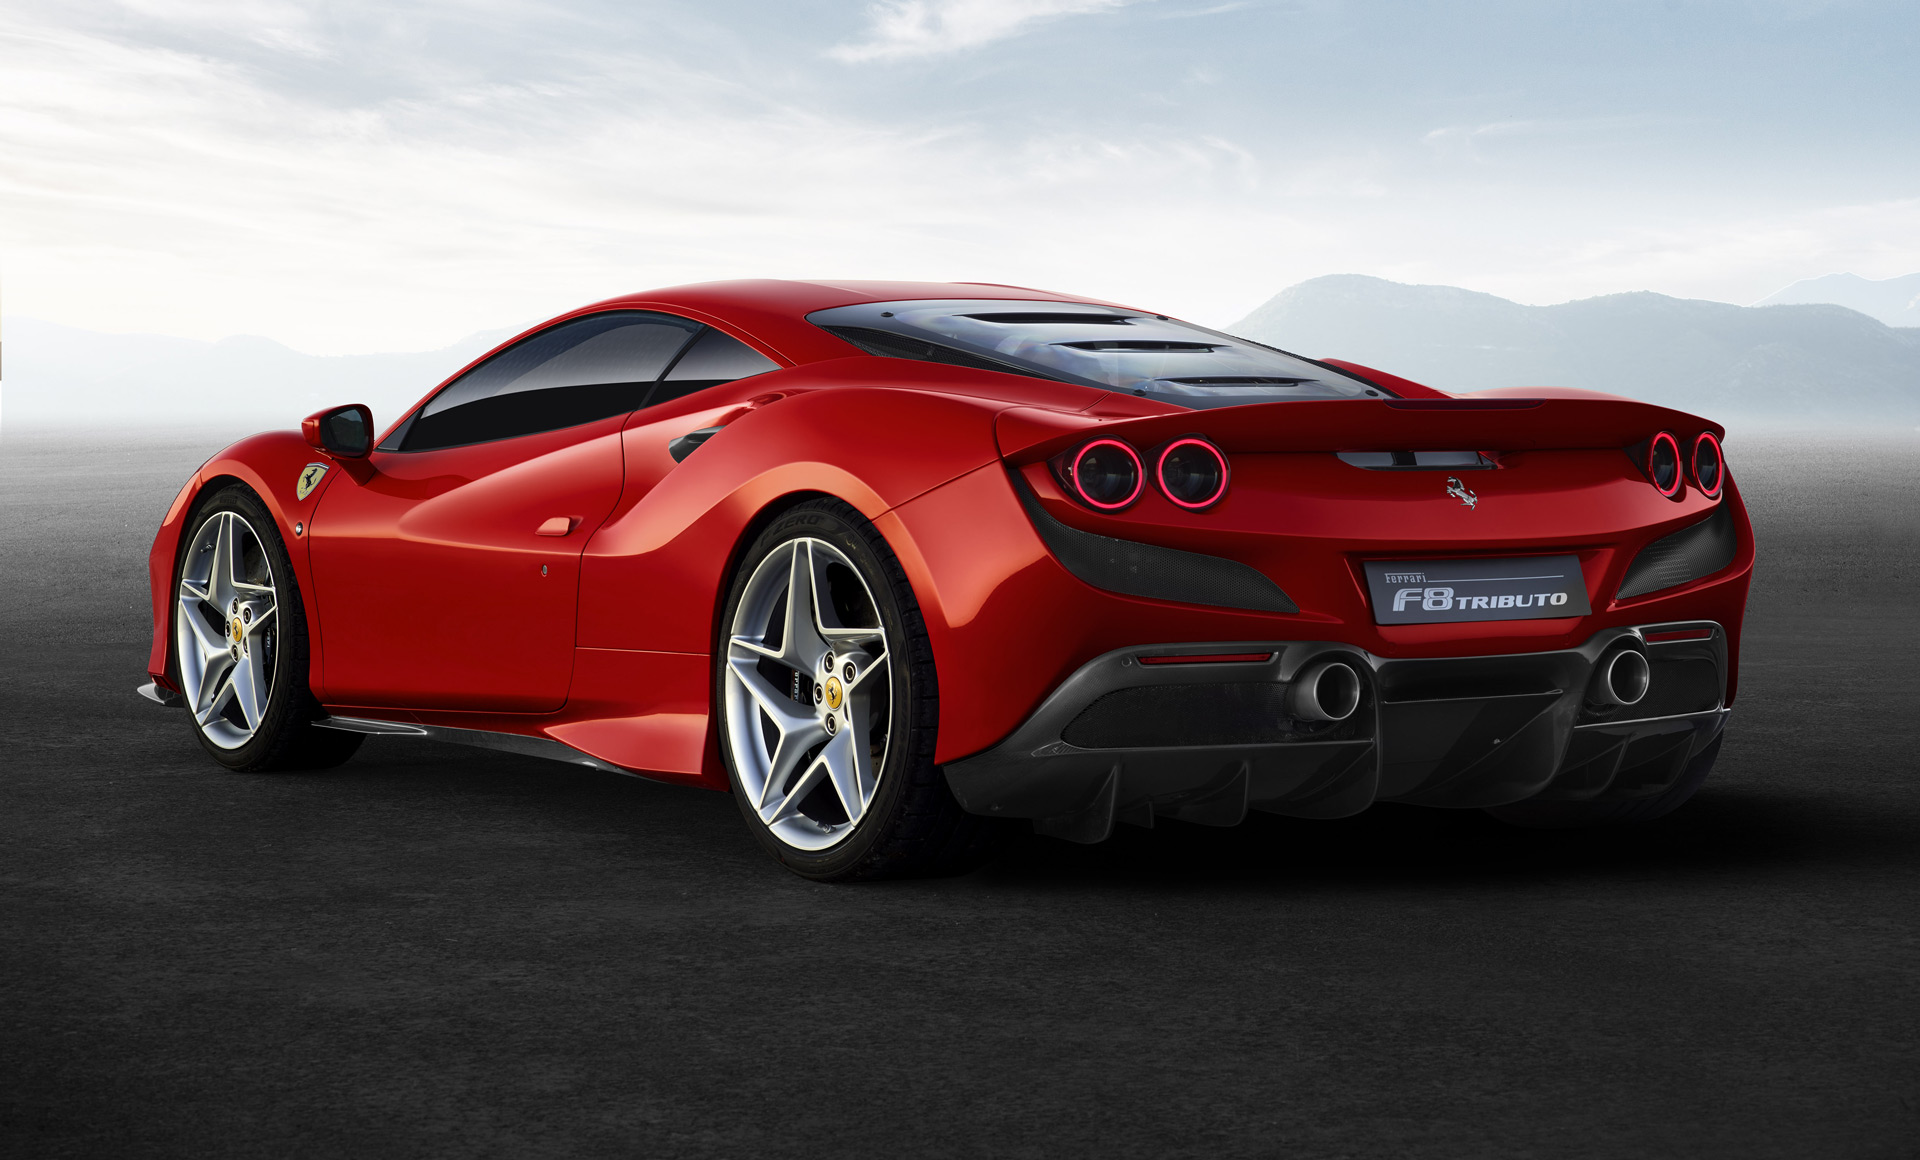 2020 Ferrari F8 Tributo Rear Three-Quarter Wallpaper (4)